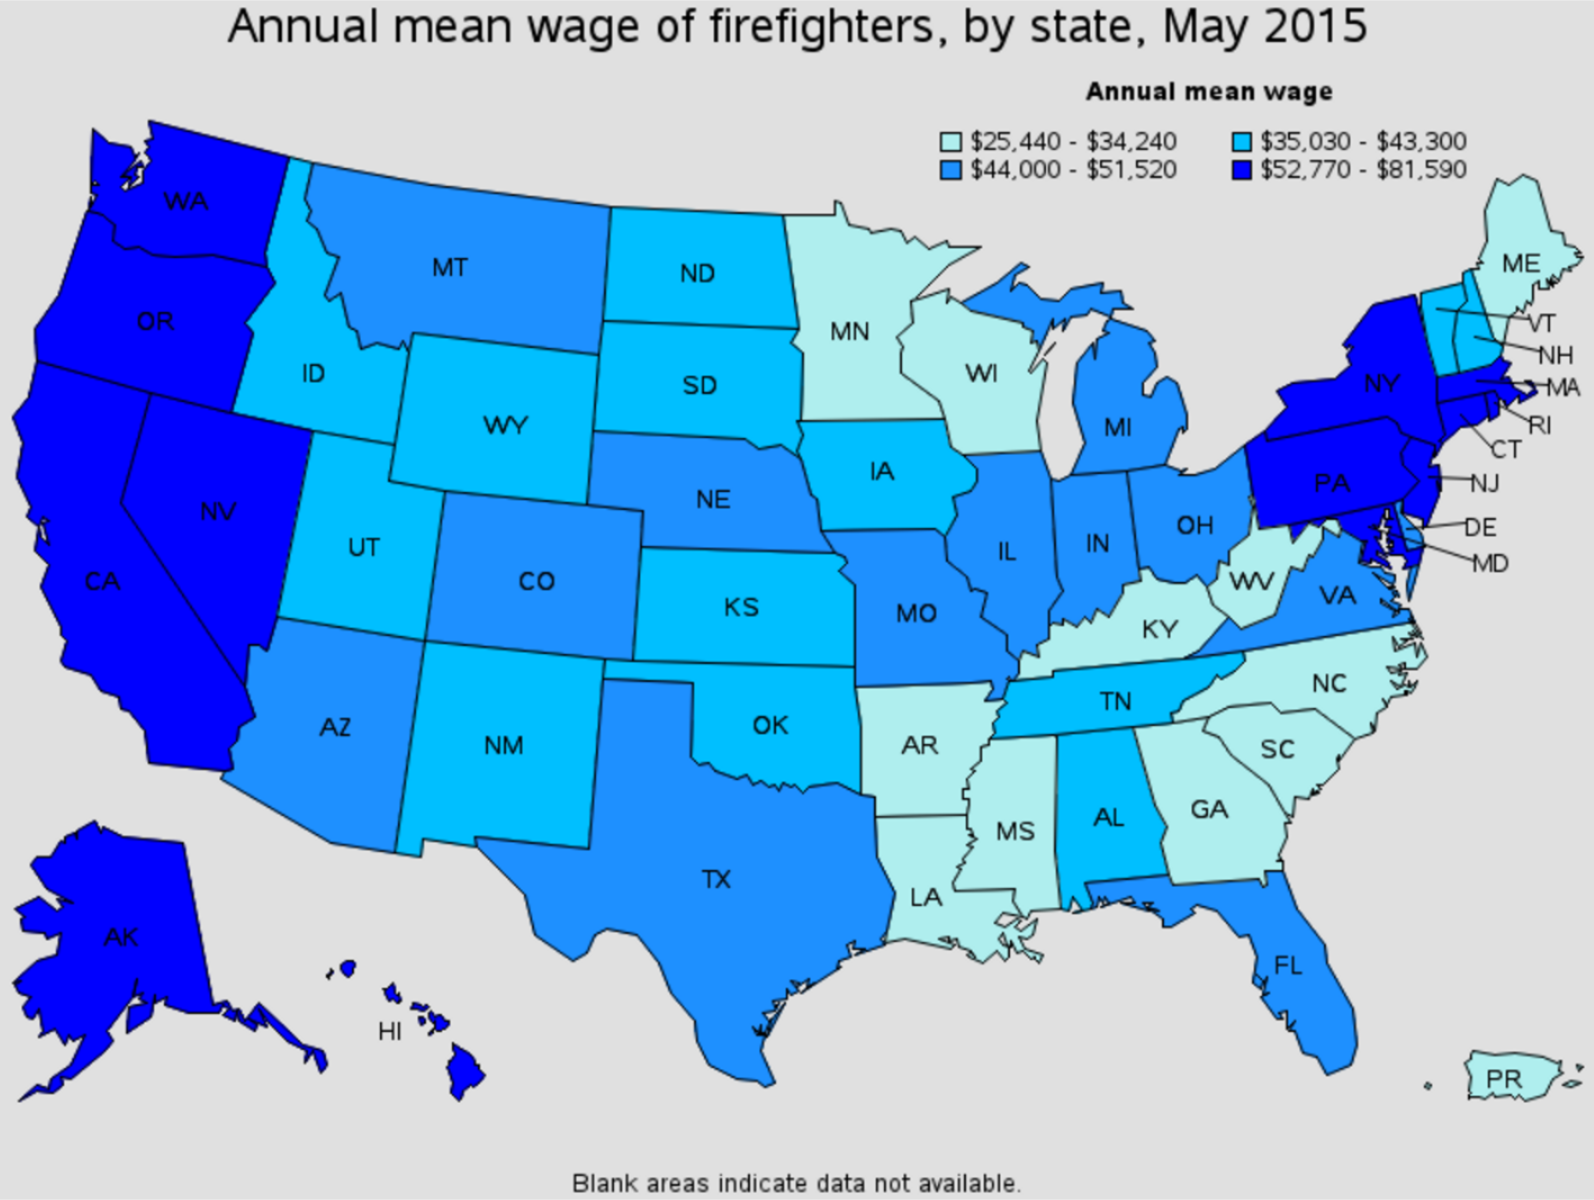 firefighter average salary by state Warren Michigan